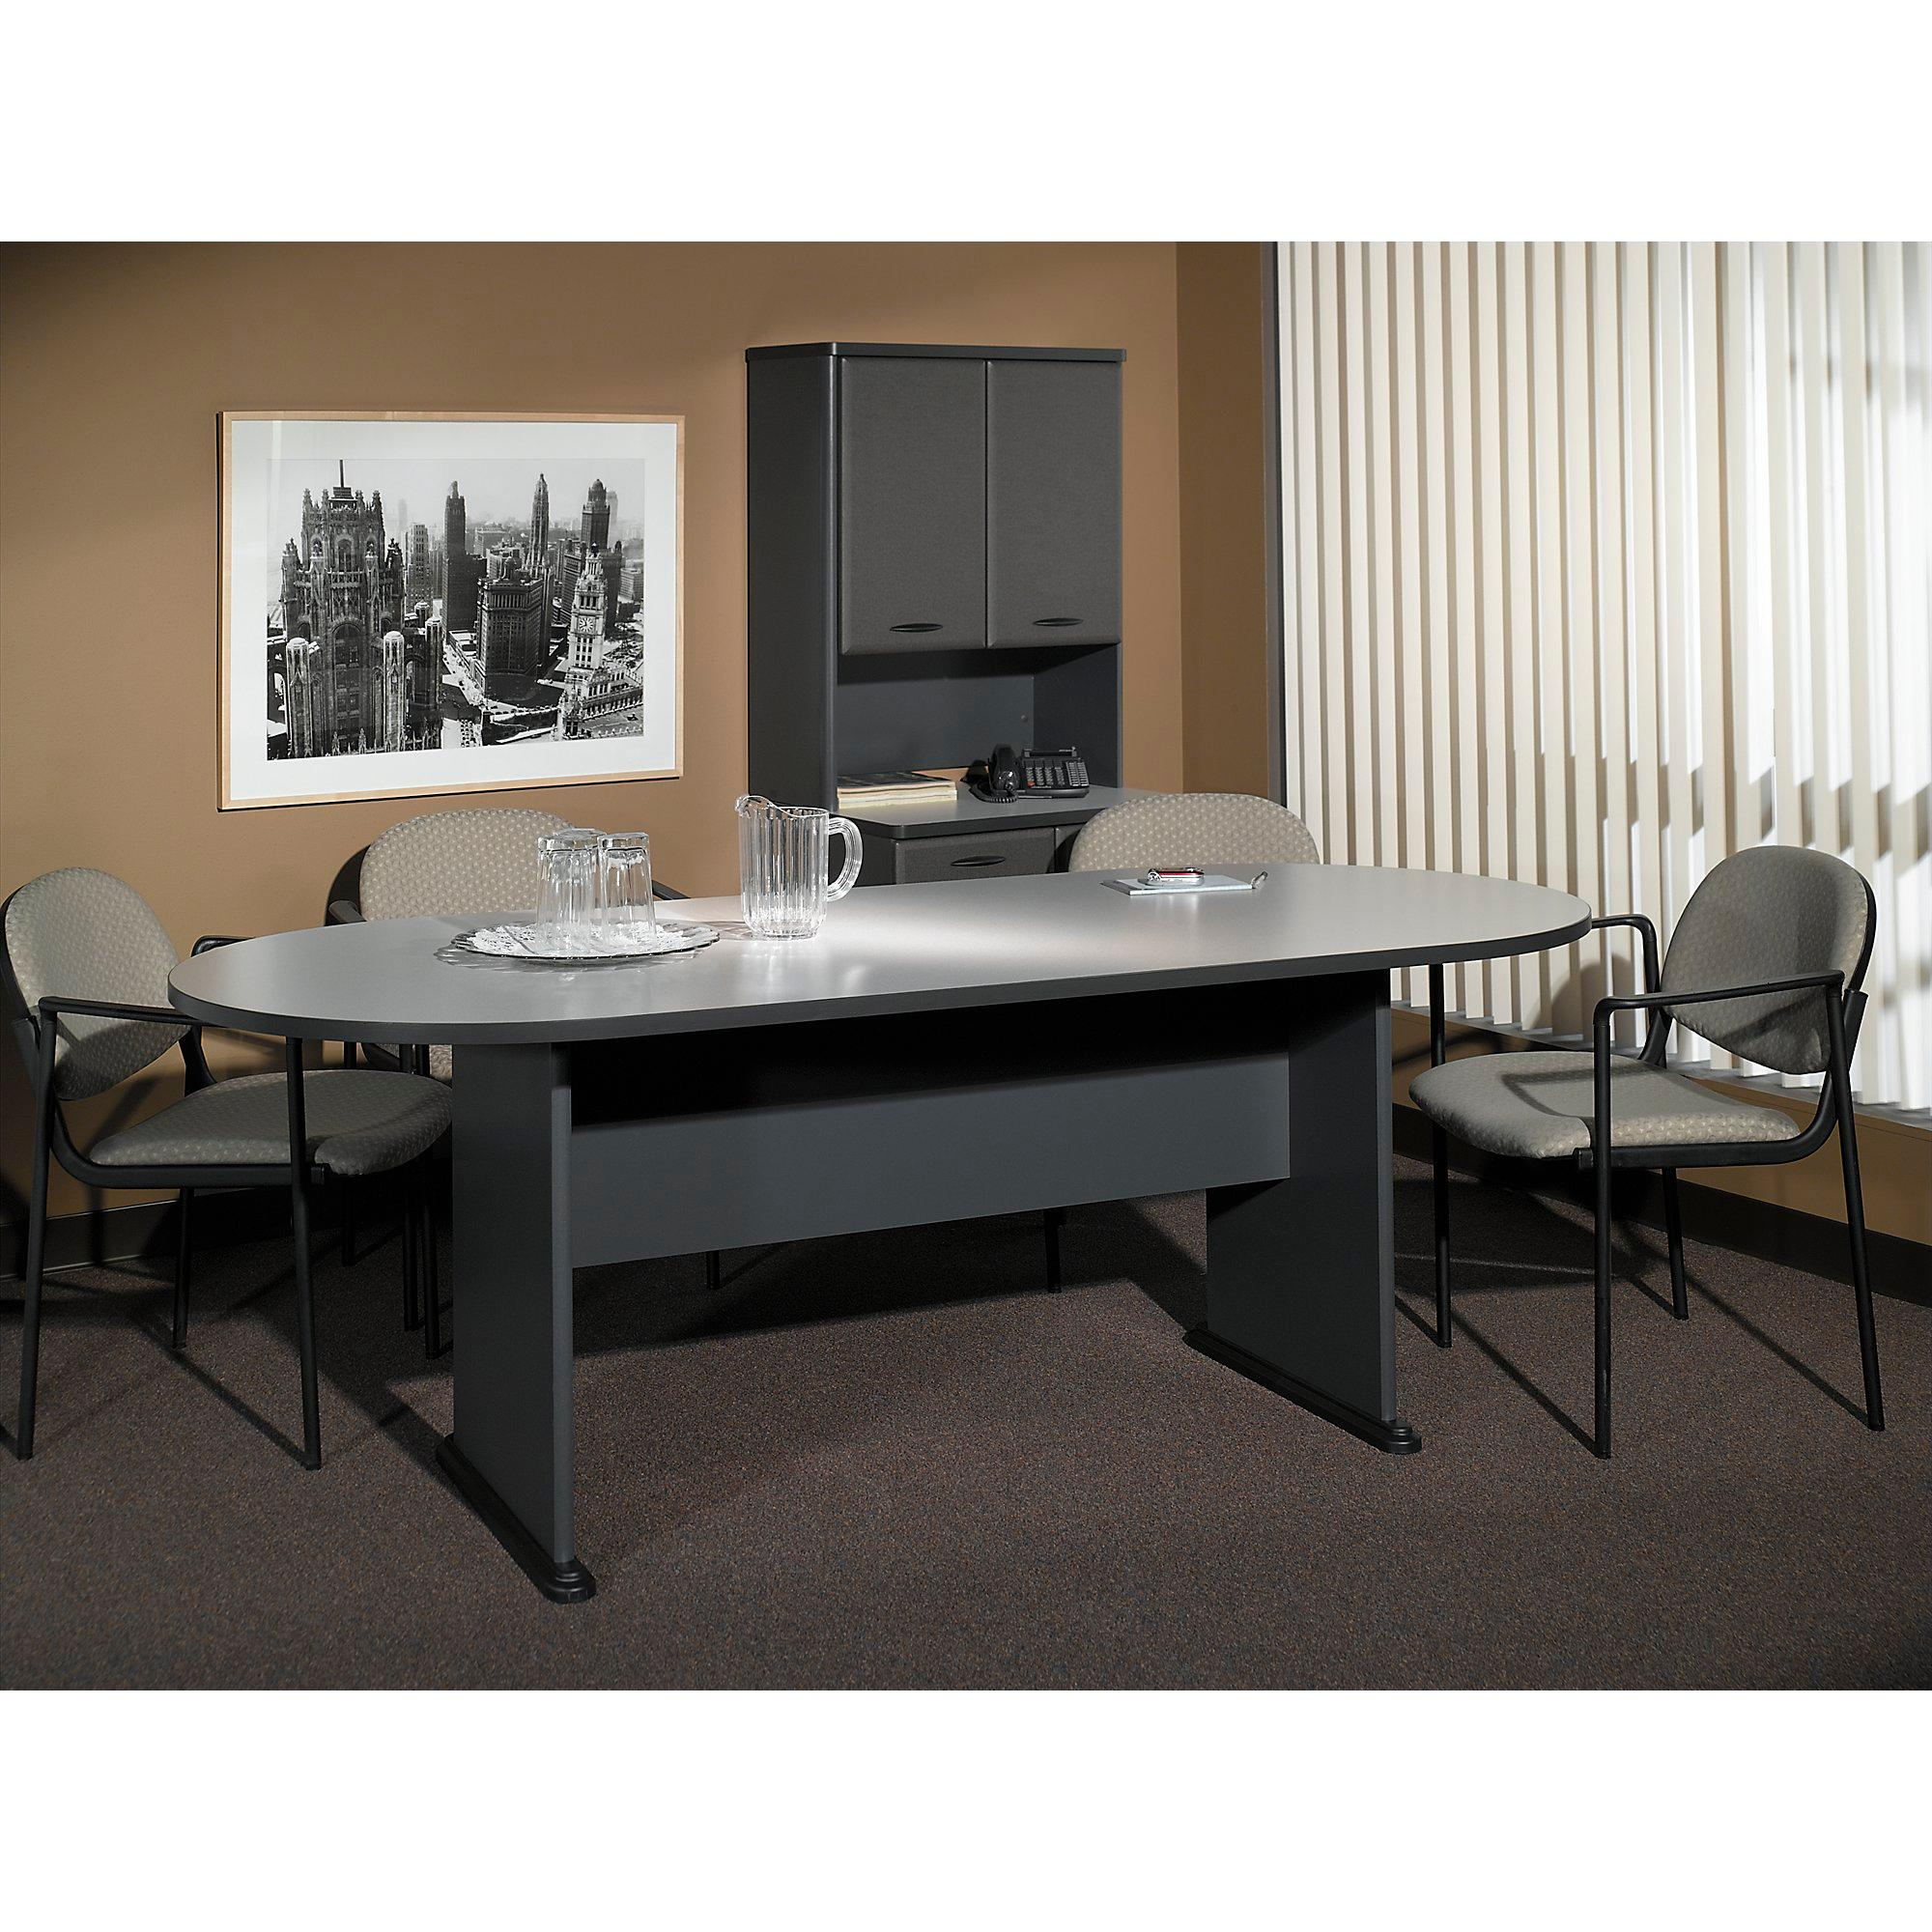 small tables for office. view larger small tables for office